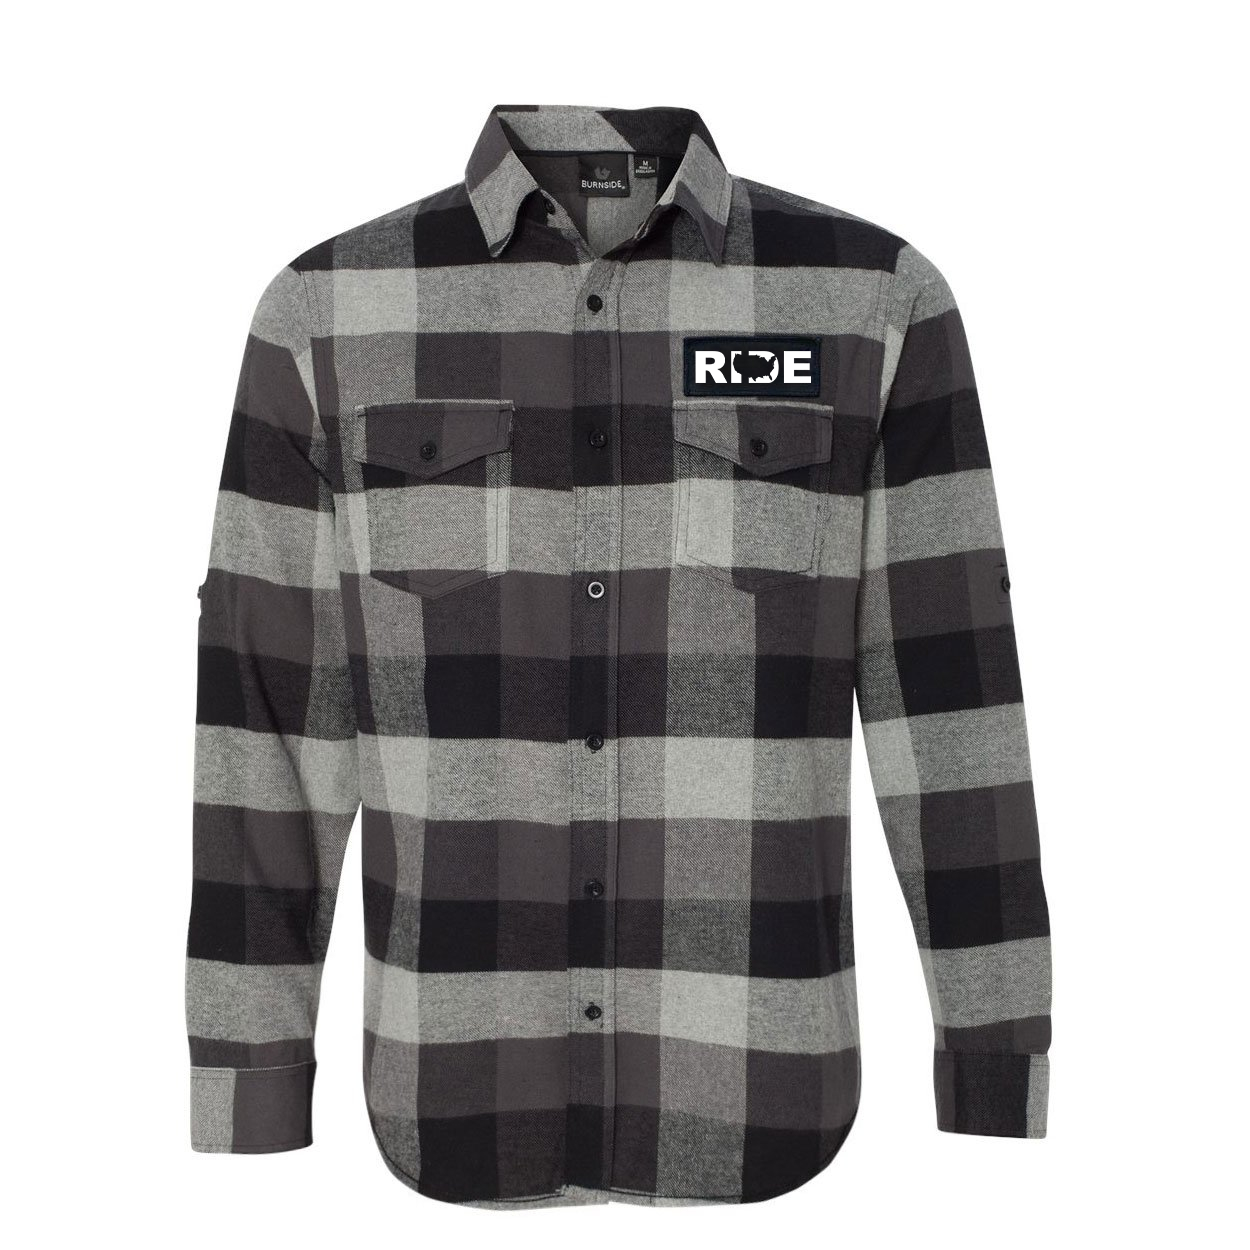 Ride United States Classic Unisex Long Sleeve Woven Patch Flannel Shirt Black/Gray (White Logo)